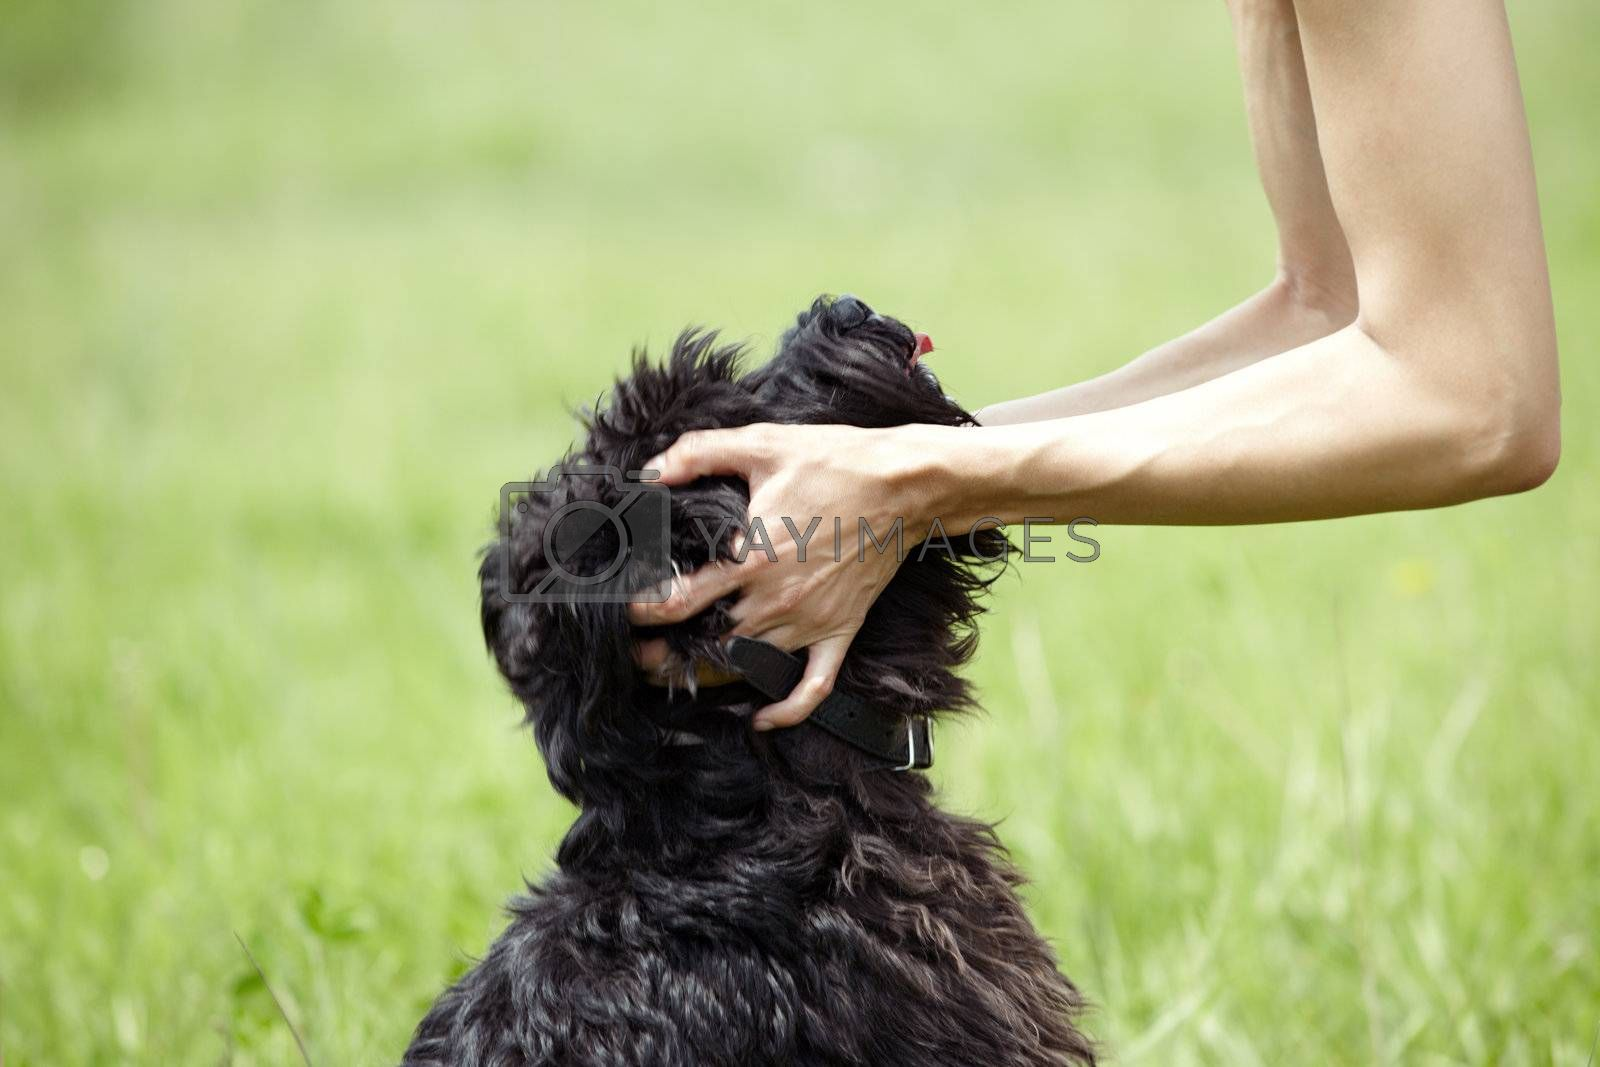 hUman hands holding the muzzle of black miniature schnauzer. Natural light and colors